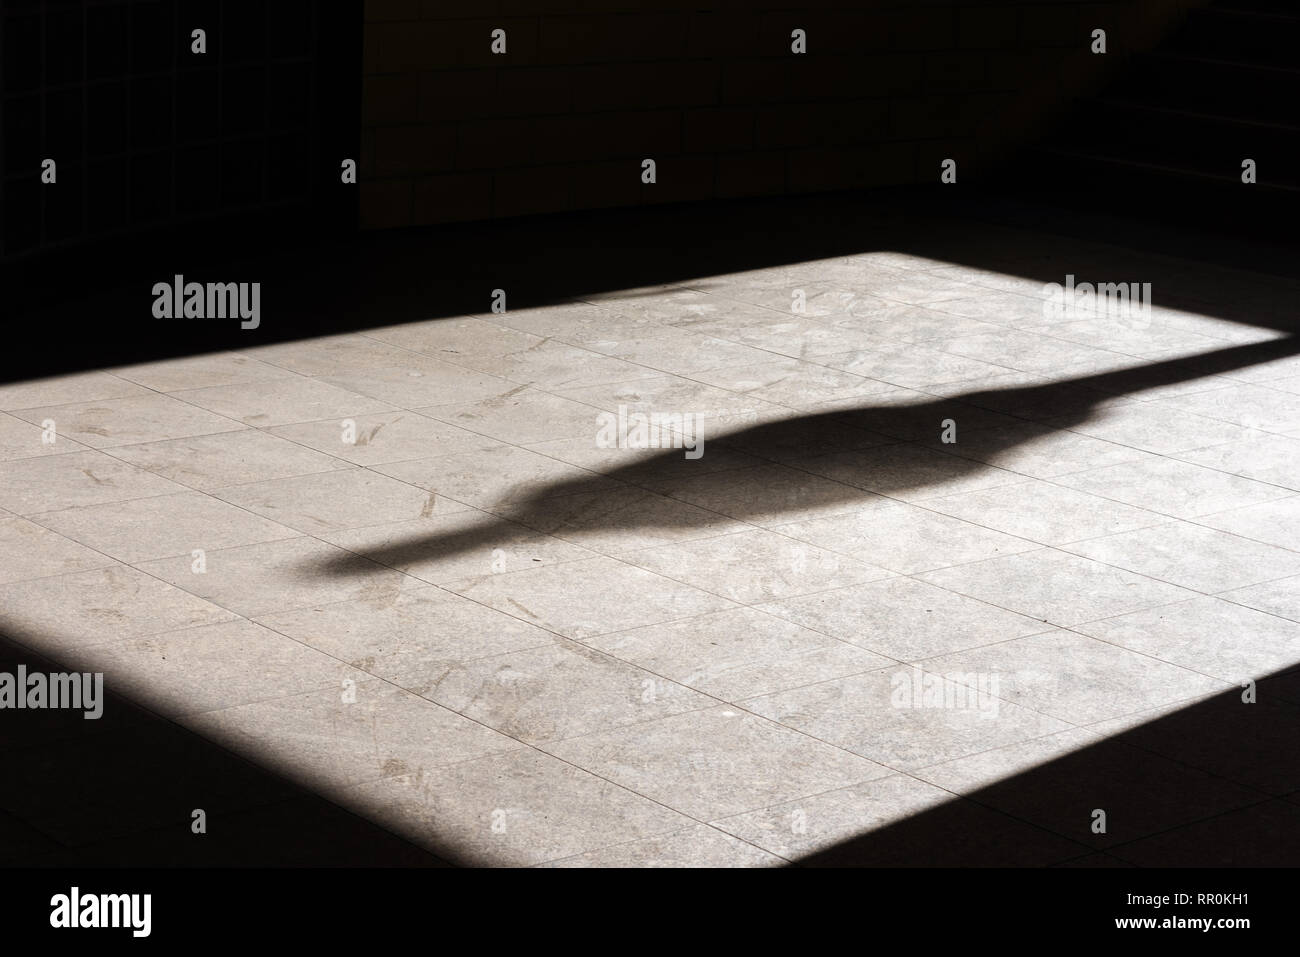 A shadow of a single person on a tiled floor - Stock Image